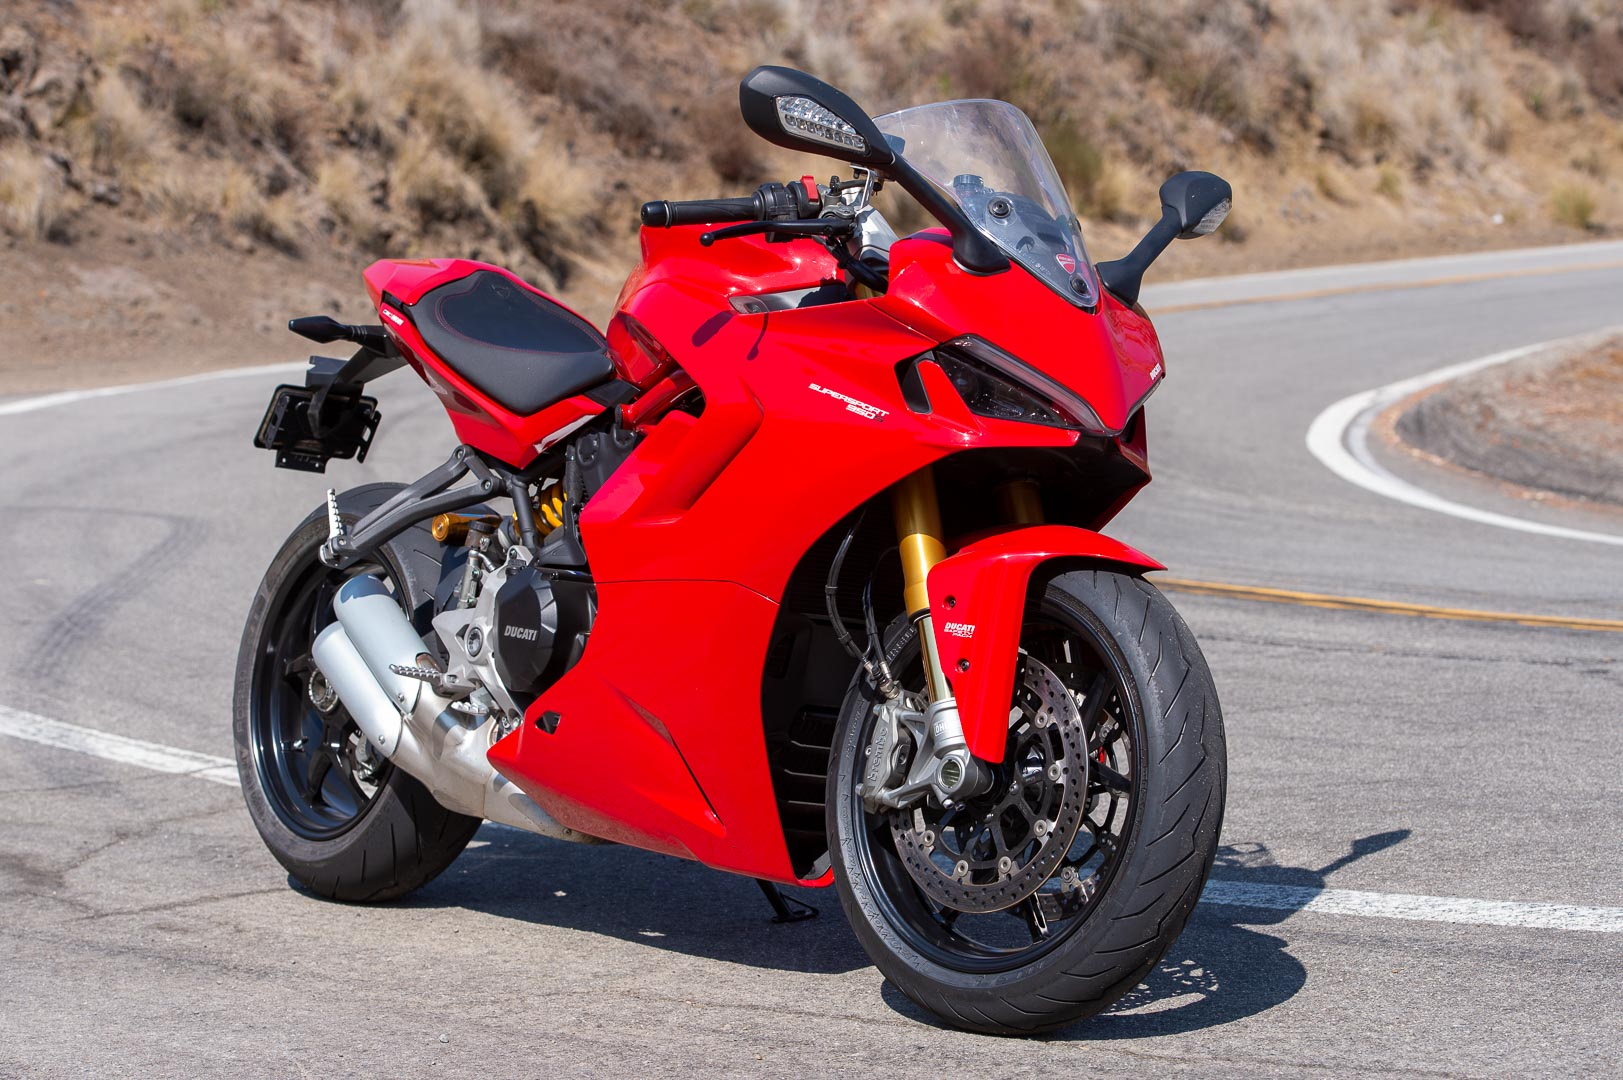 2021 Ducati SuperSport 950 S Review: Price